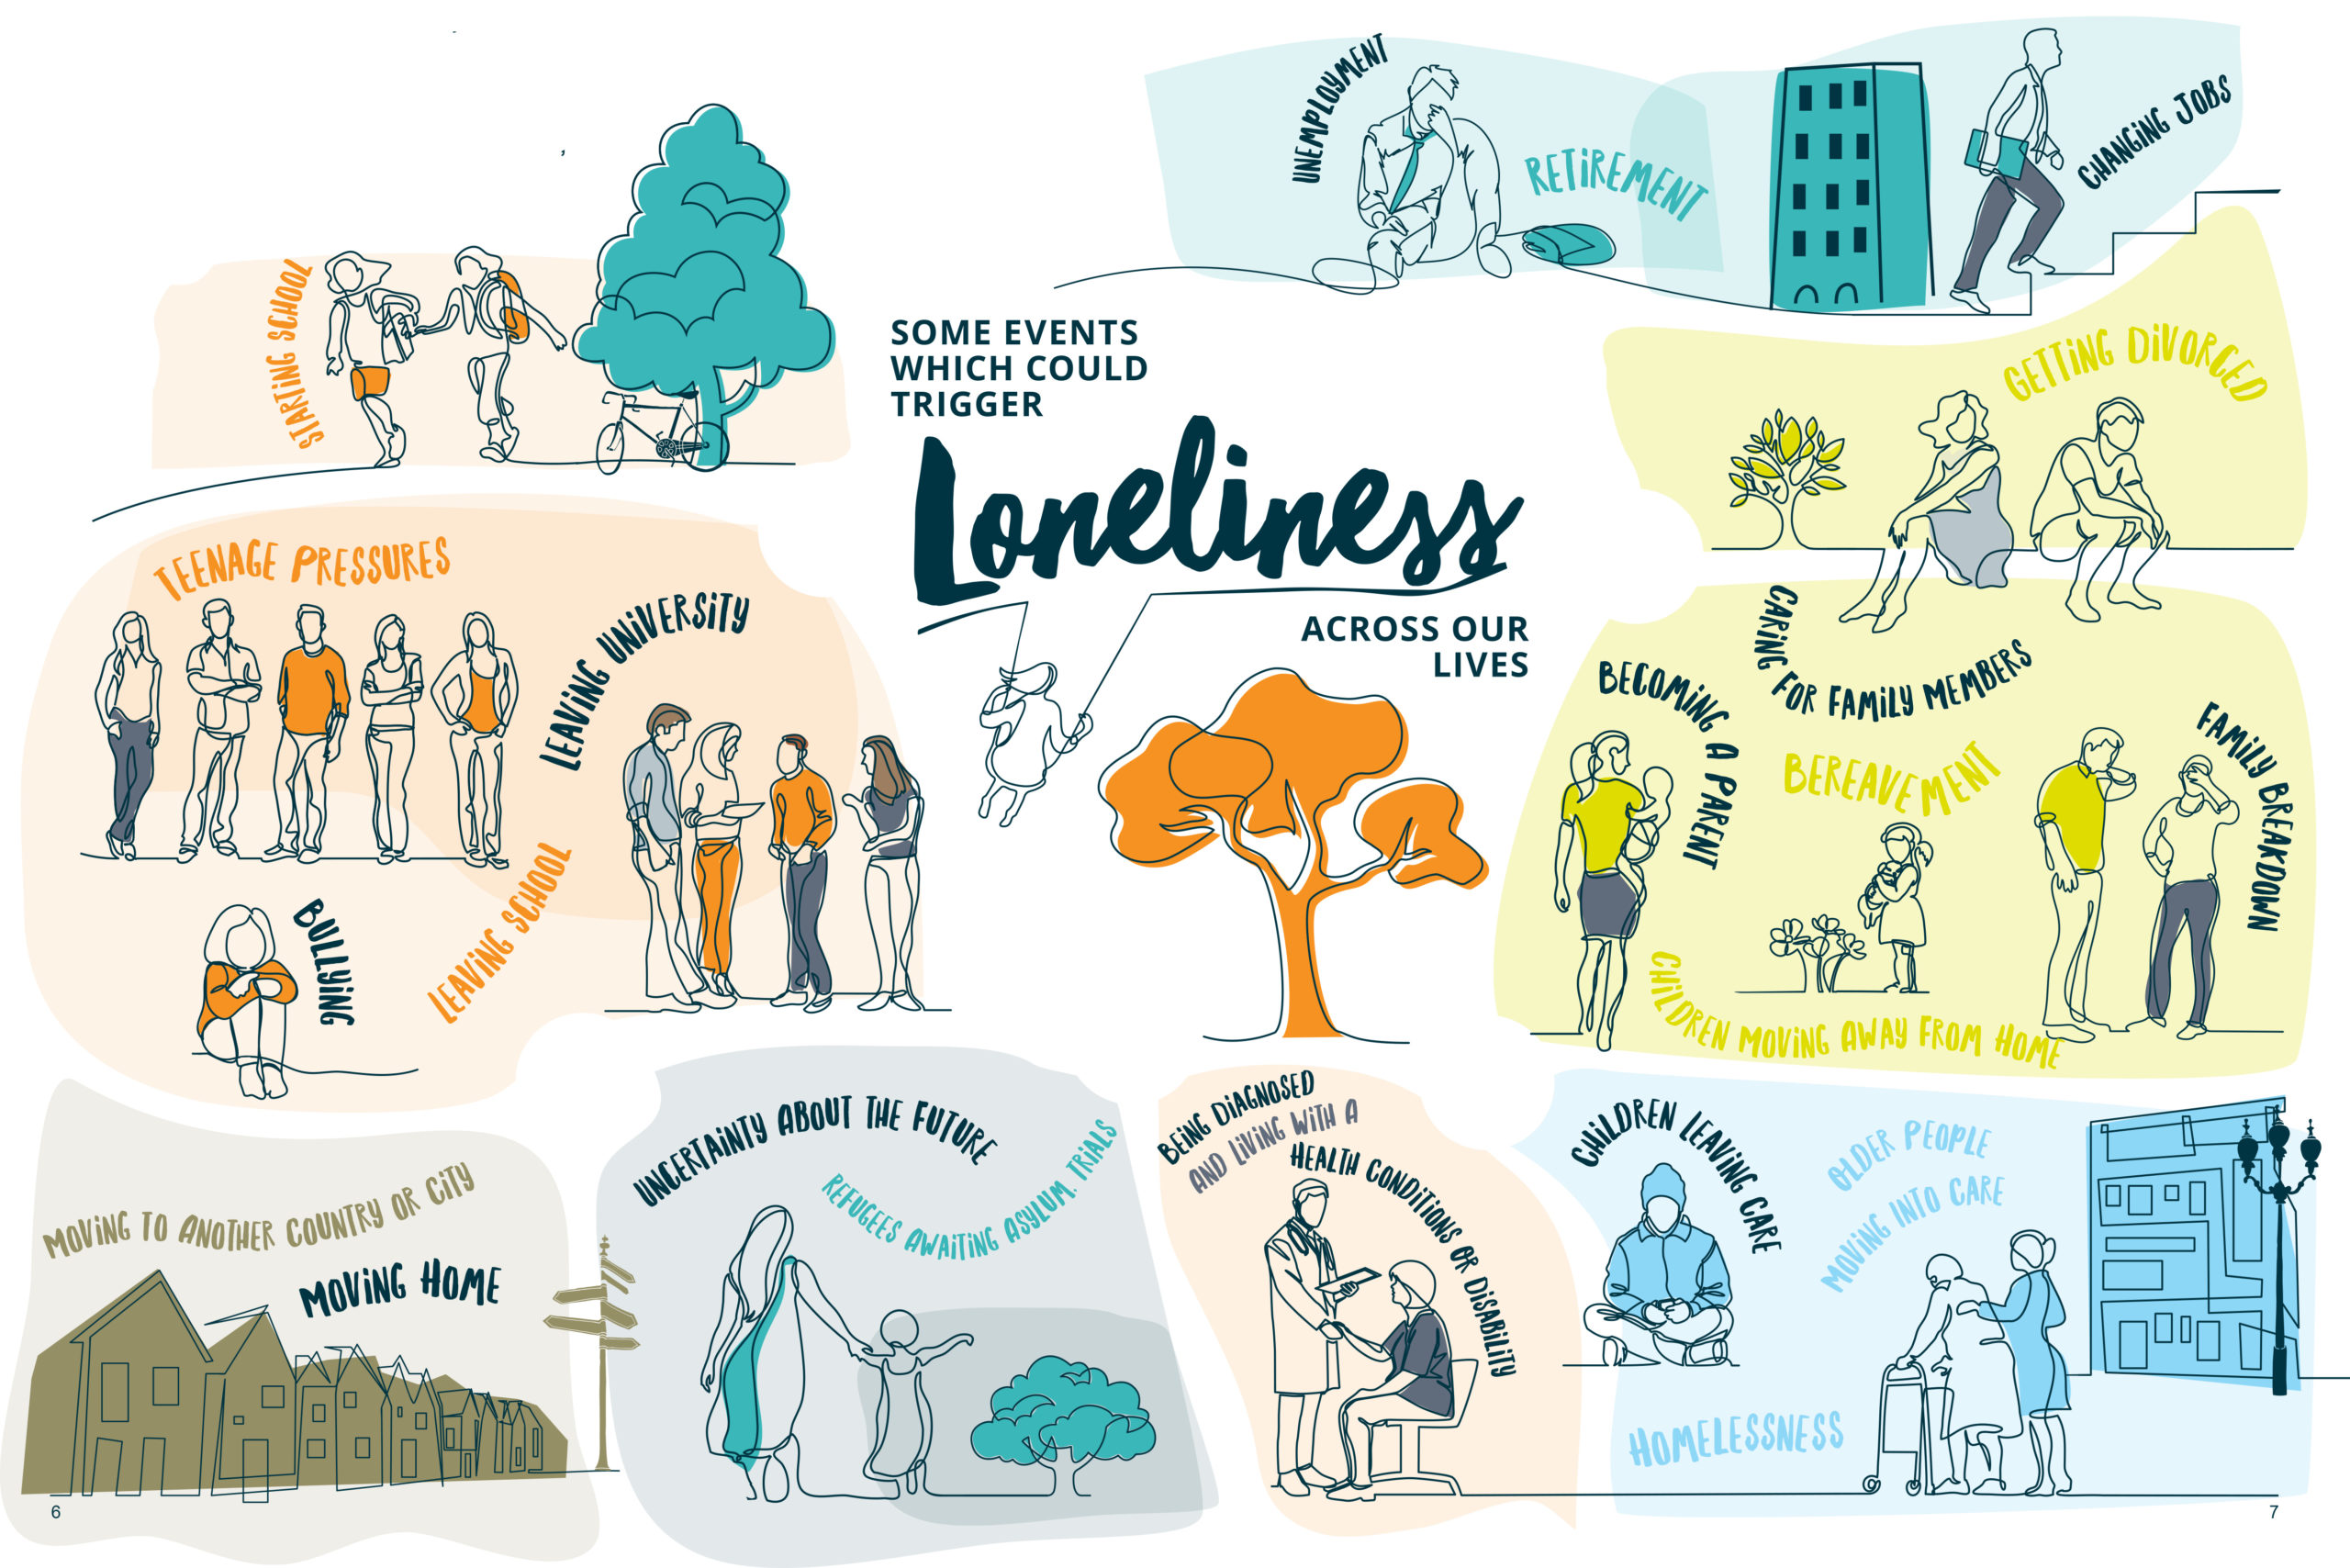 Events that trigger loneliness across the lifecourse